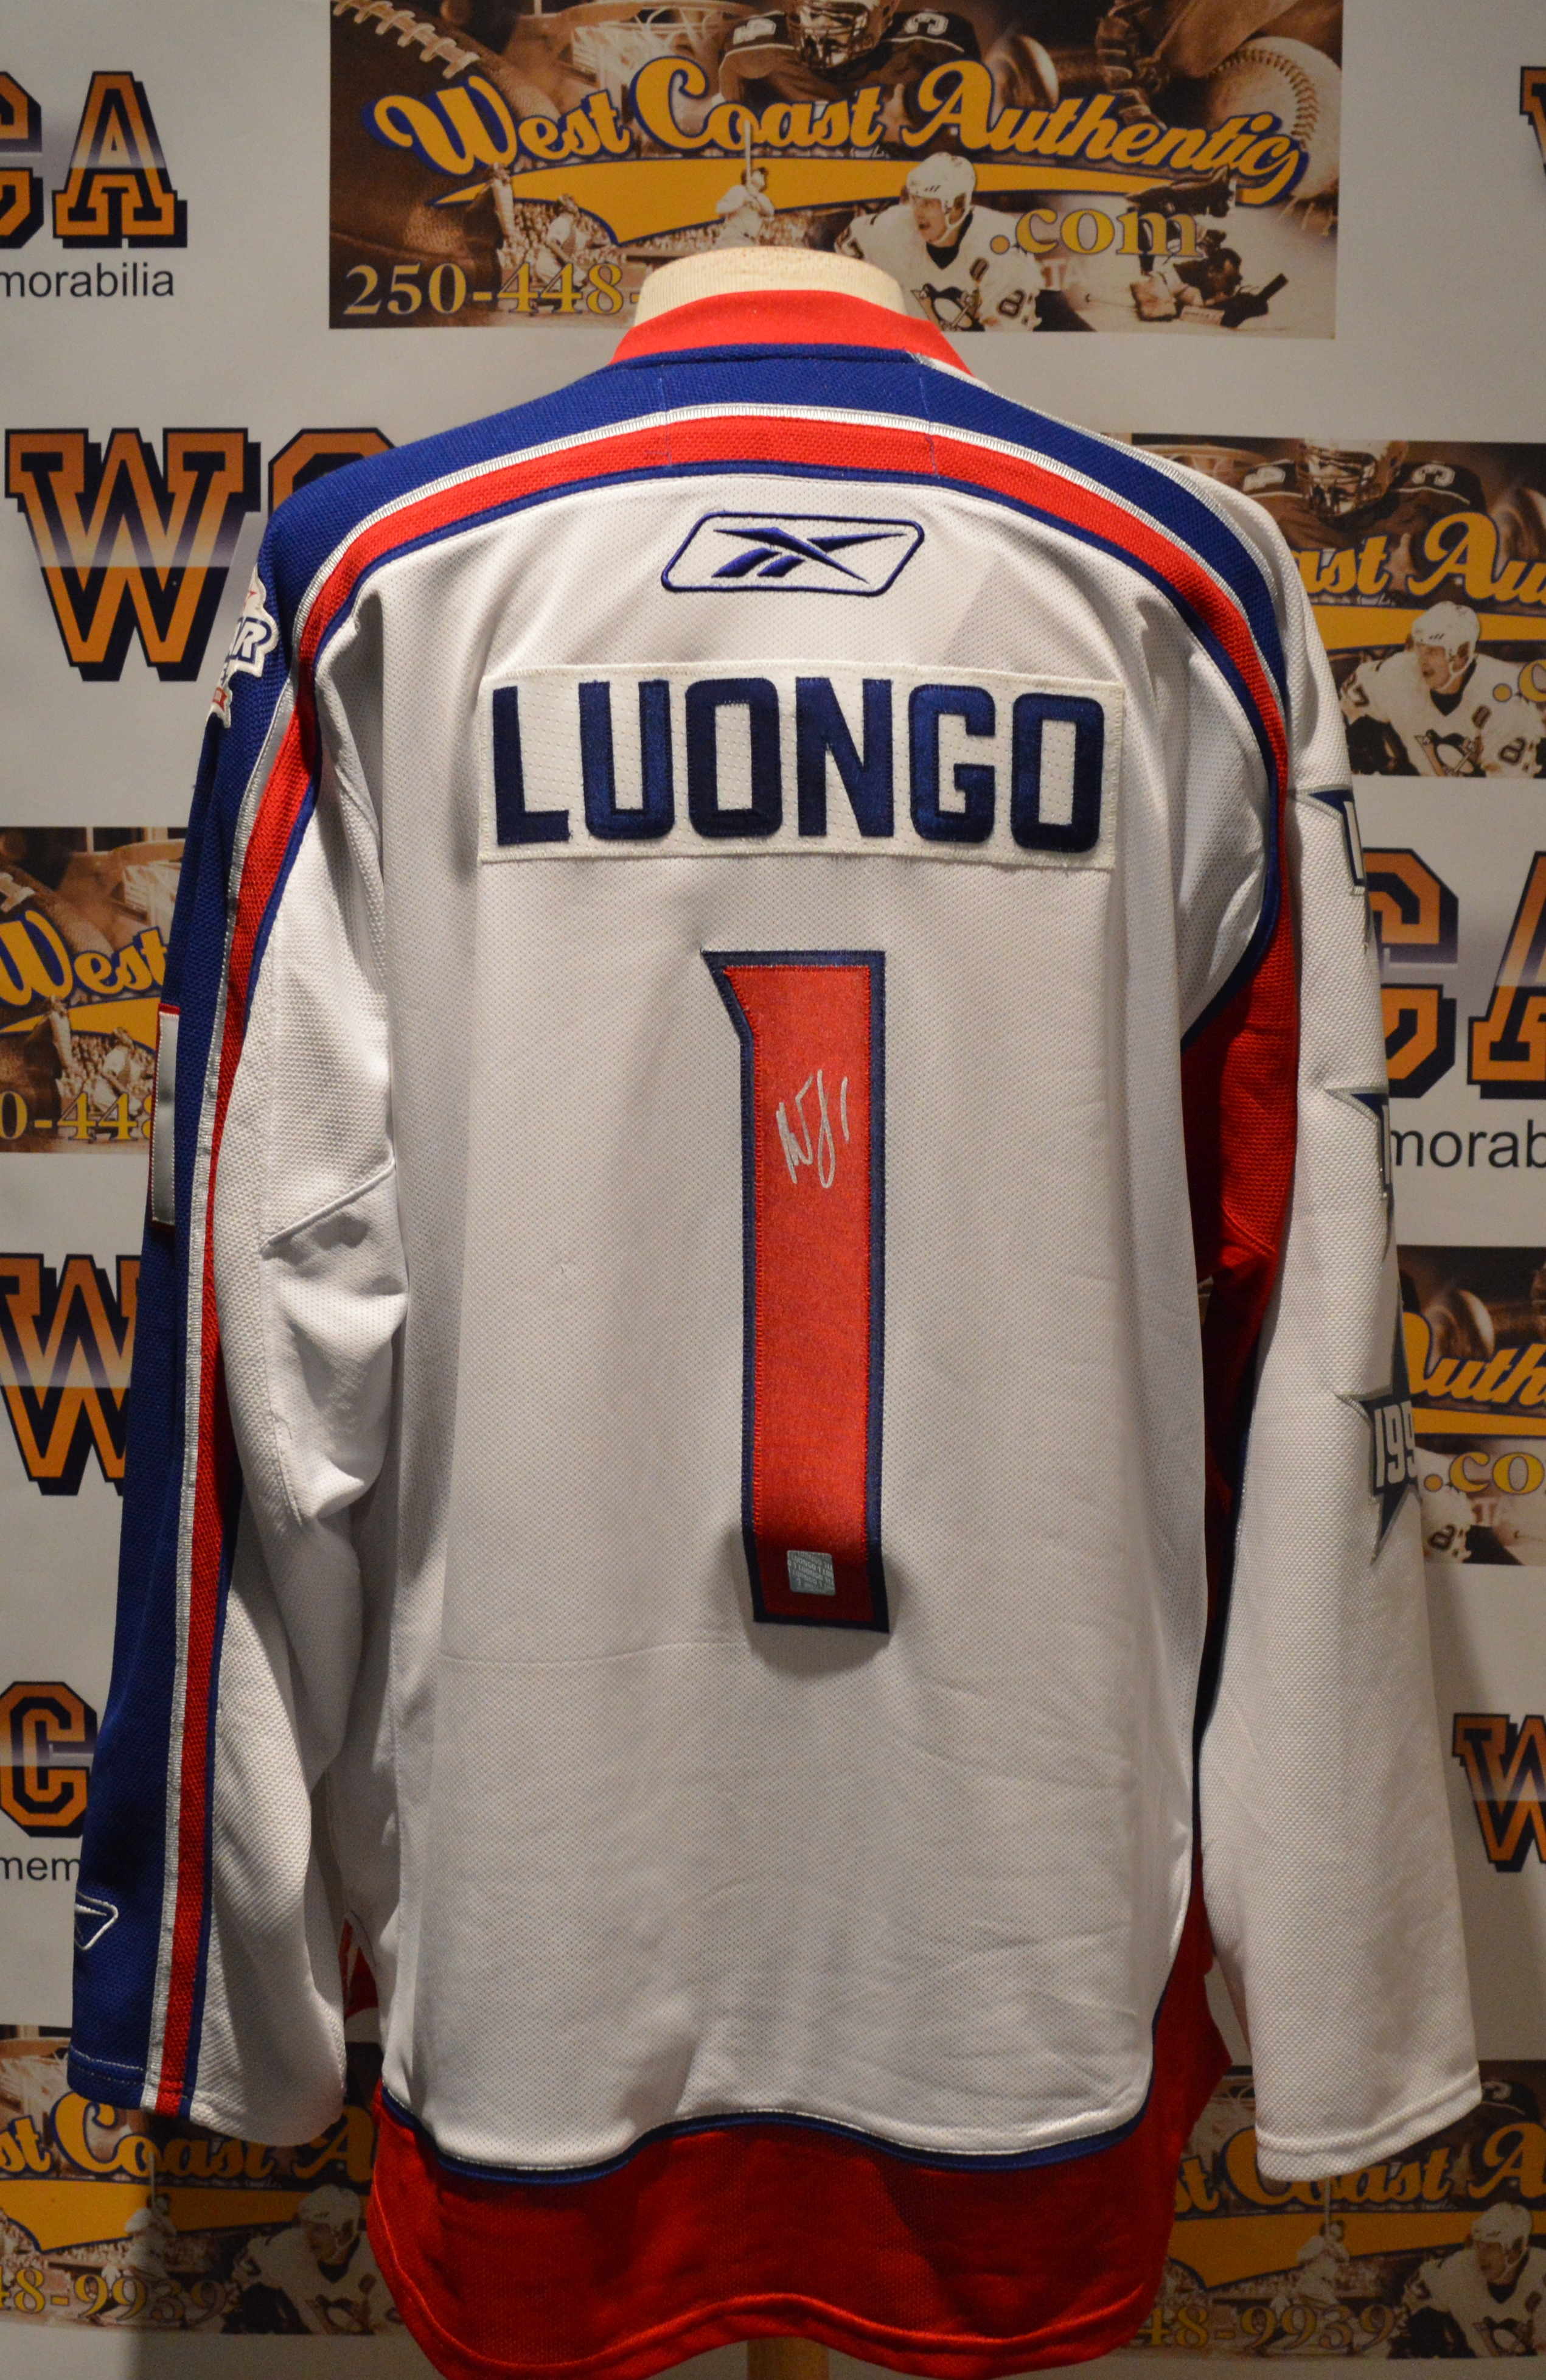 Roberto Luongo Autographed Nhl All Star Game Jersey